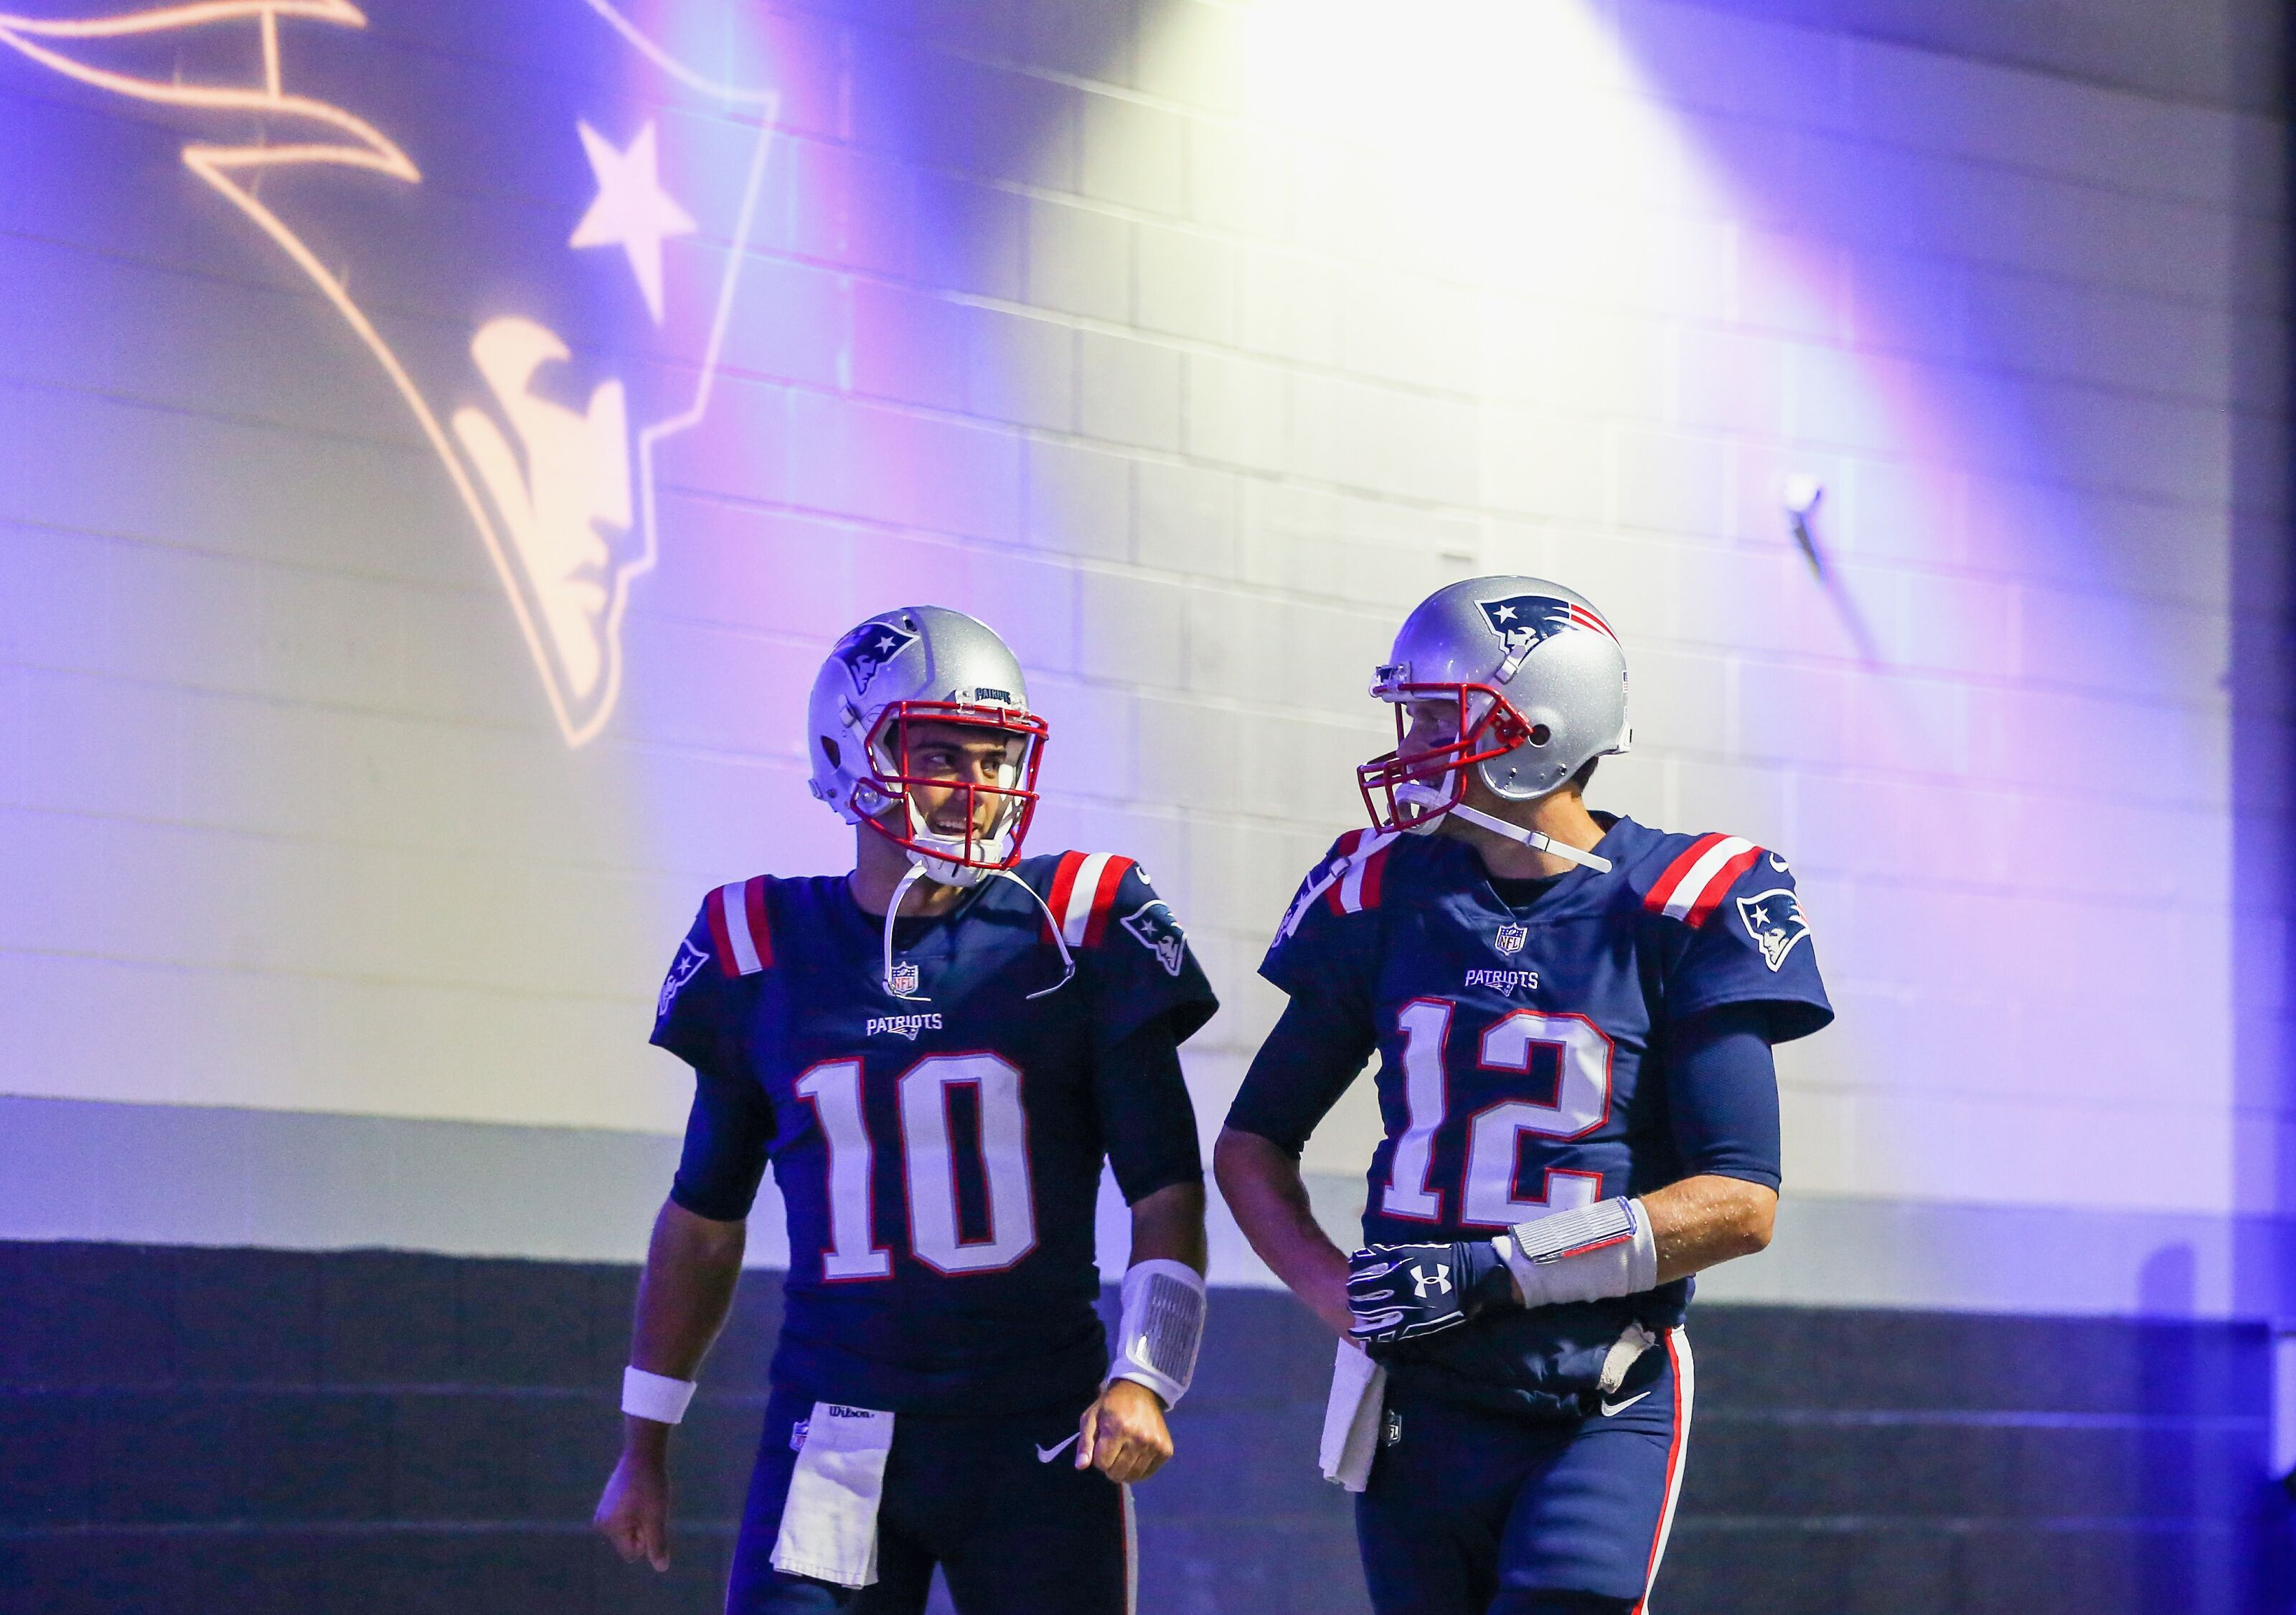 Jimmy Garoppolo: 'Invaluable' experience learning from Tom Brady